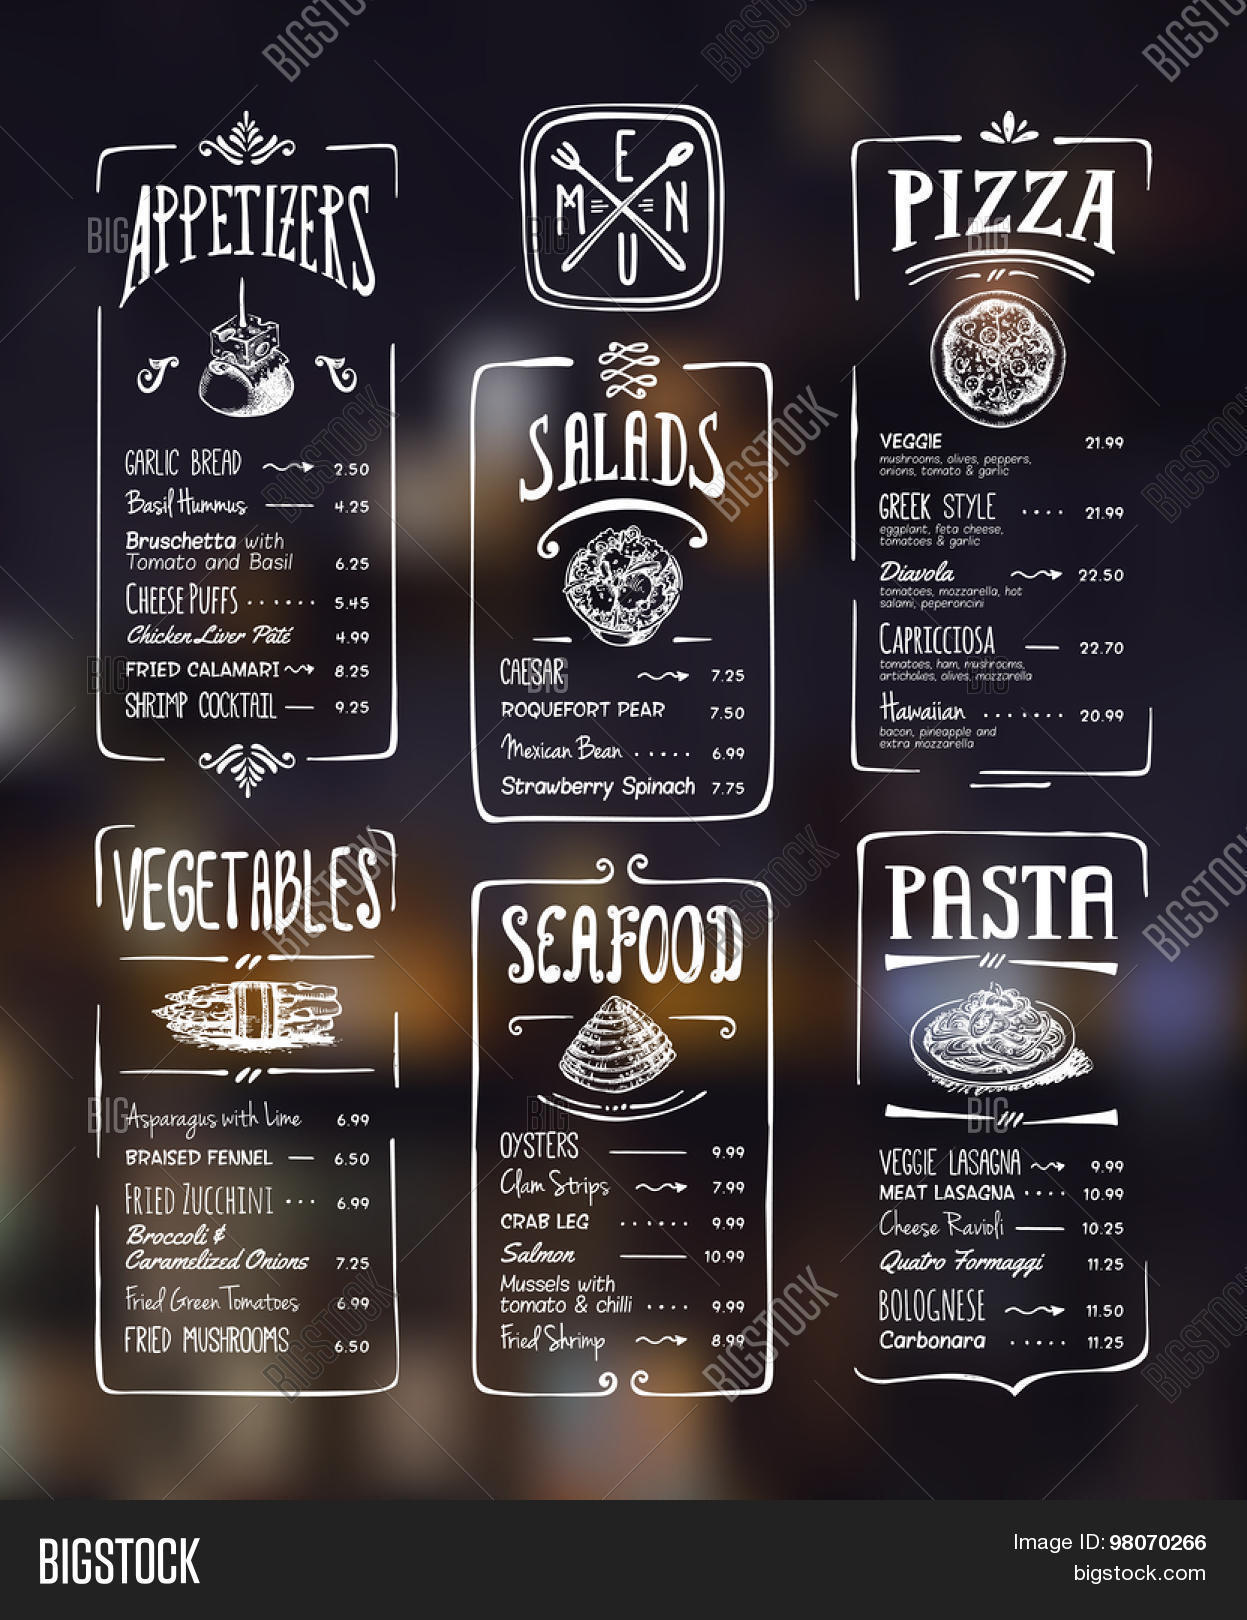 Menu Template White Drawing On Dark Background Appetizers Vegetablessalads Seafood